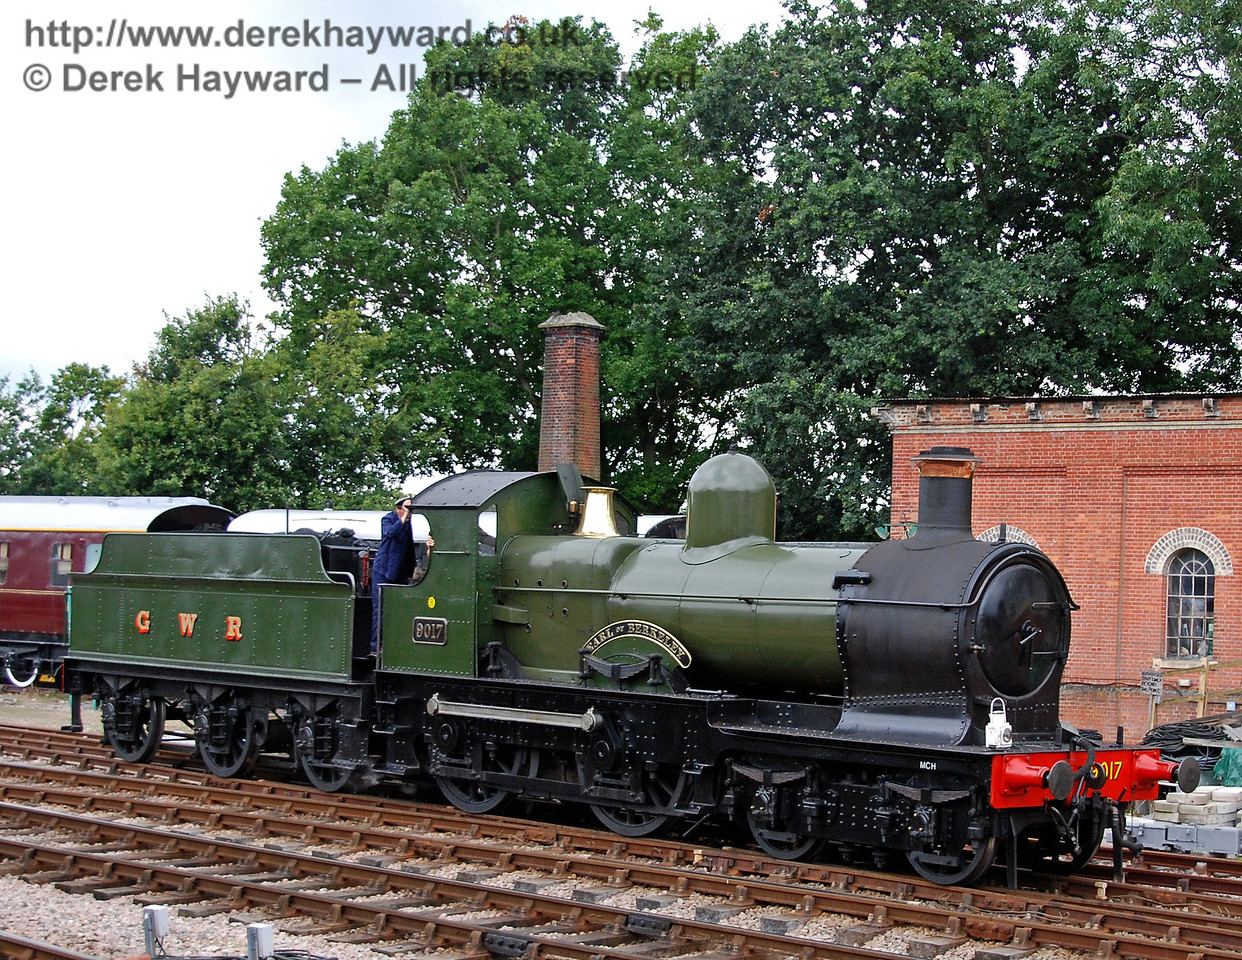 9017 passes the old water tower outside Horsted Keynes. 12.08.2007